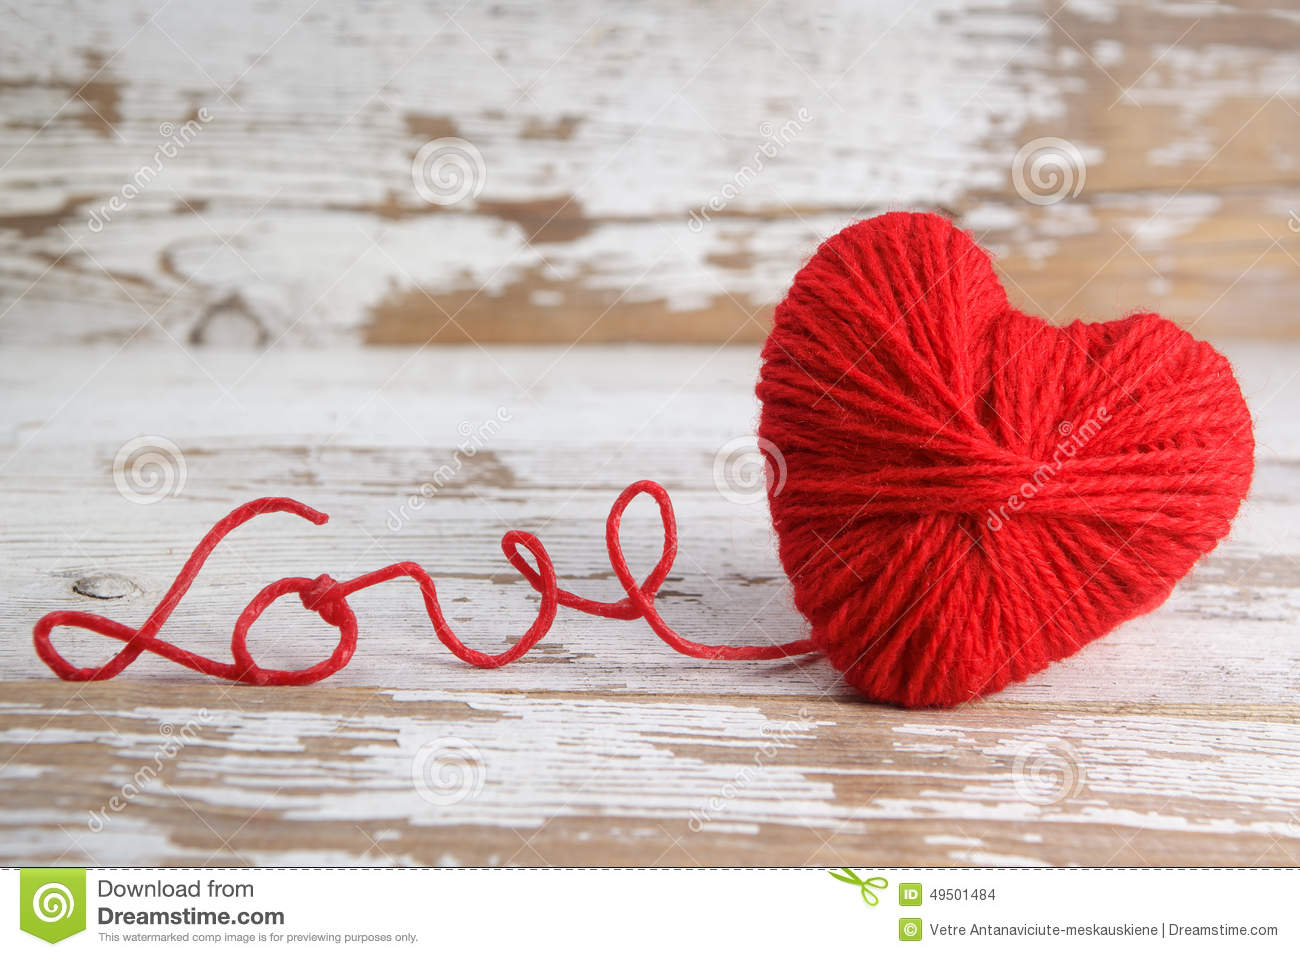 Heart Shaped Ball Of Yarn With Words Of Love Stock Photo